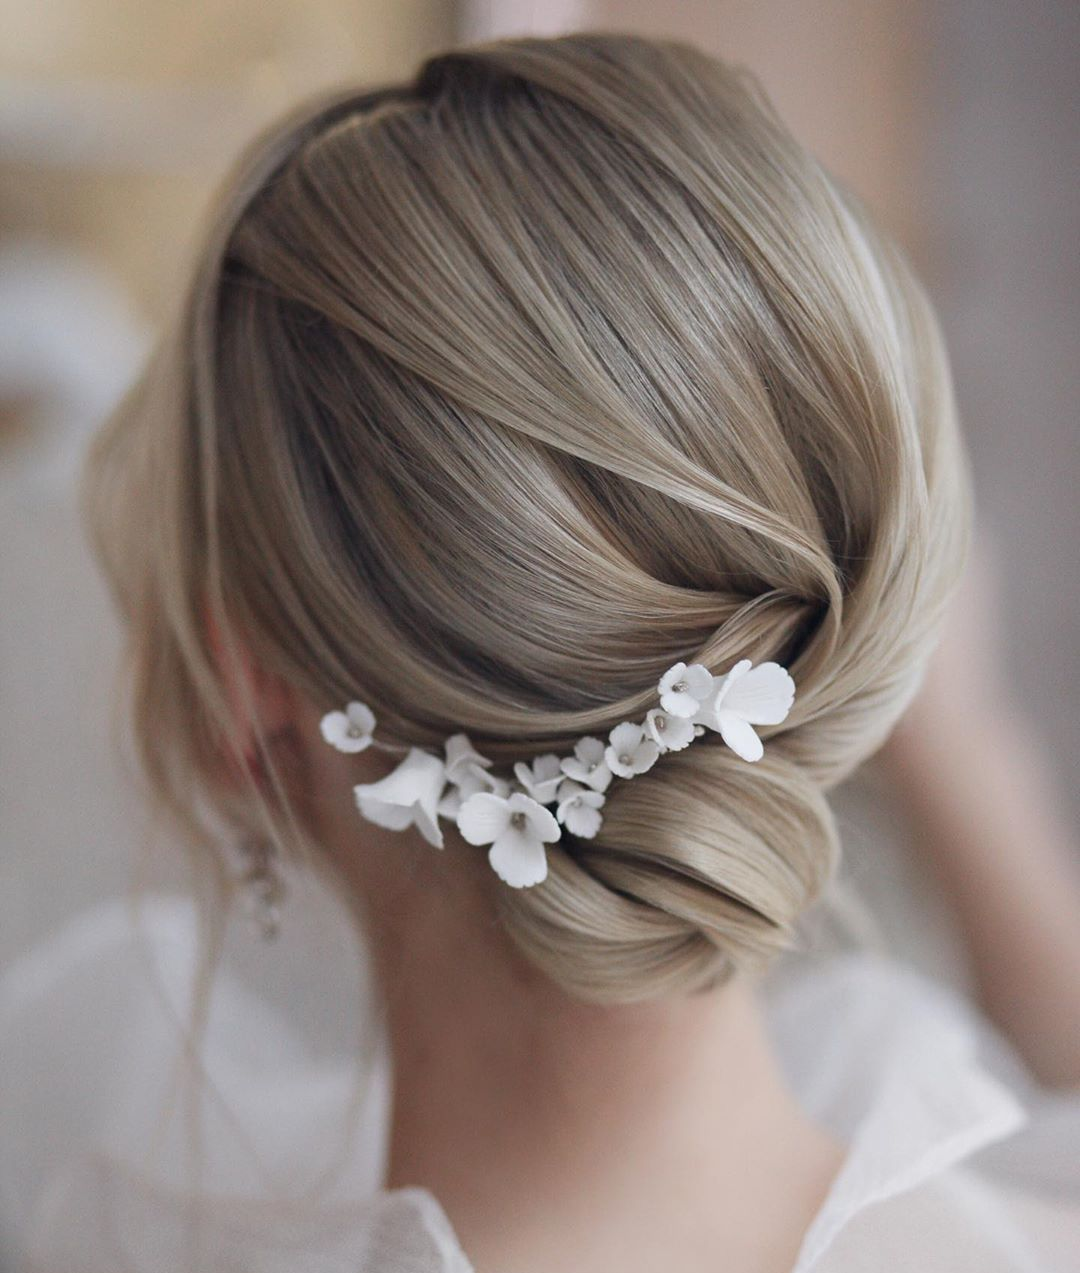 9 Updos for Short Hair to Feel Inspired & Confident in 9 ...